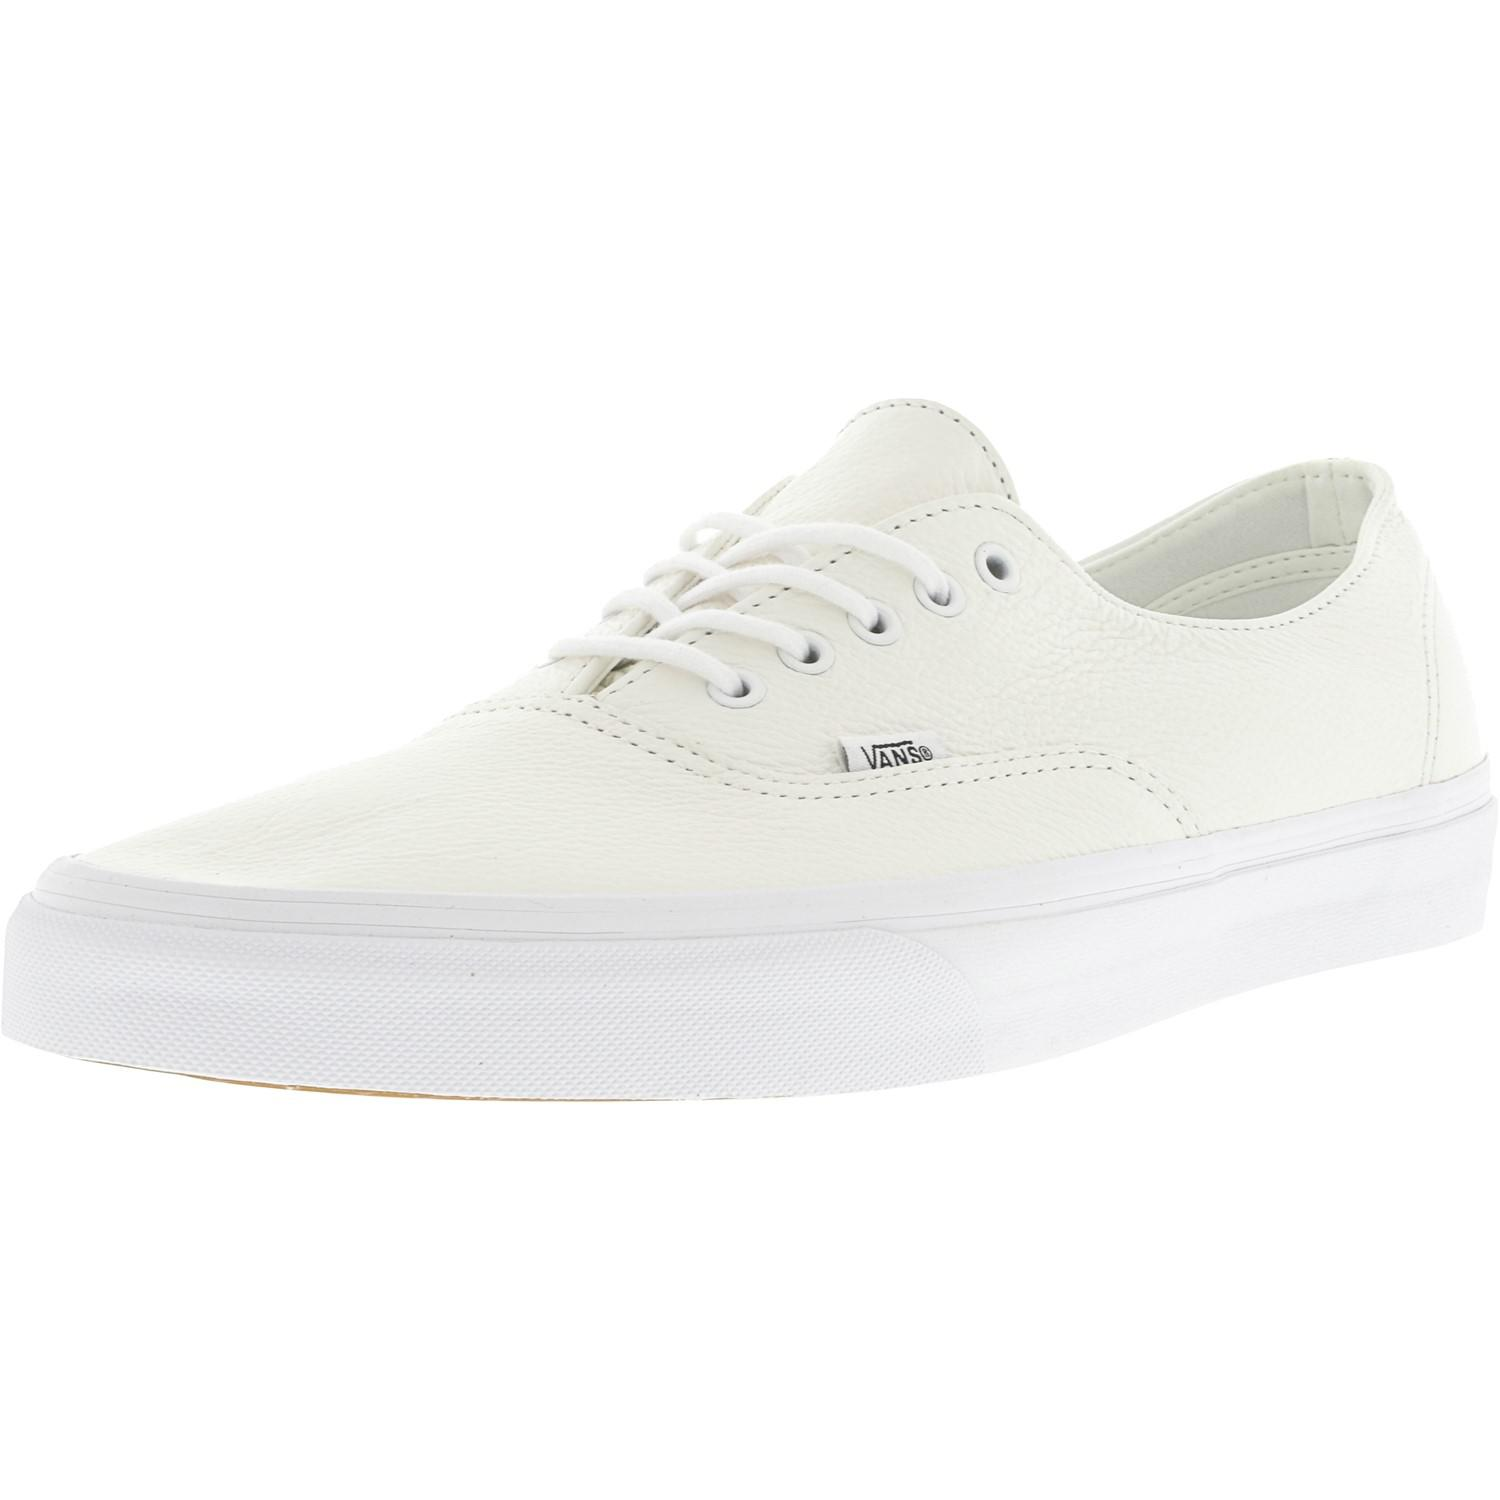 908c7c4db32b2d Lyst - Vans Authentic Decon Premium Leather True White Ankle-high ...